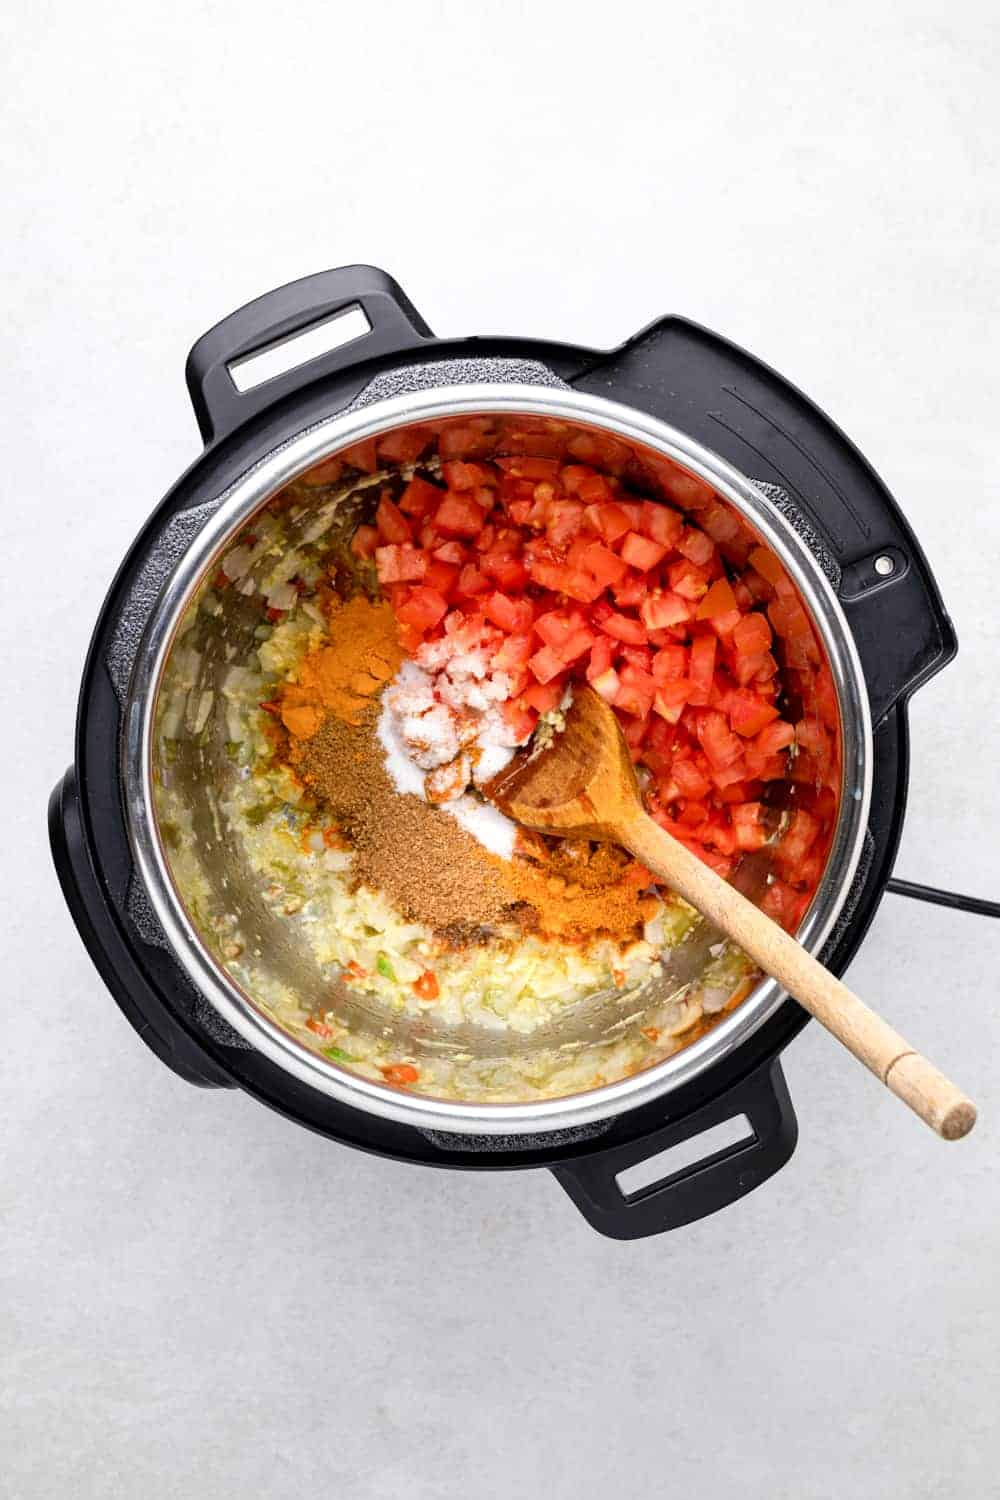 tomatoes and spices in the instant pot